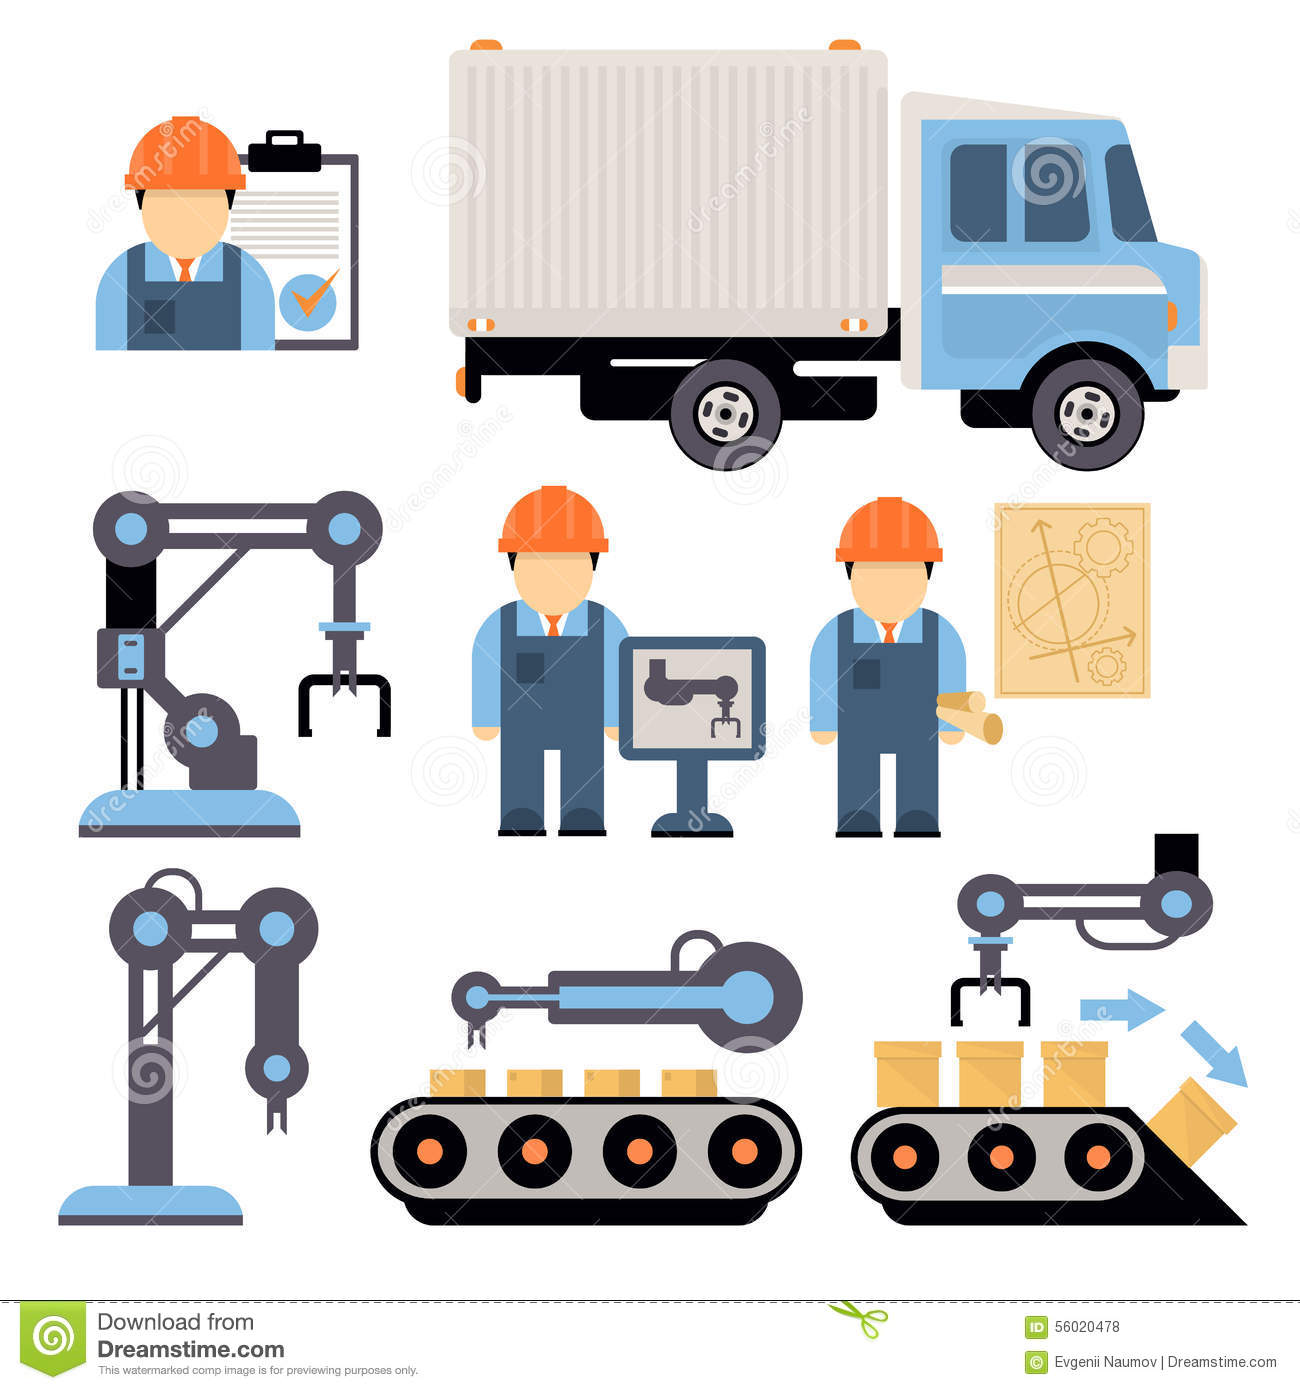 Production Process Vector Illustration Stock Vector ...